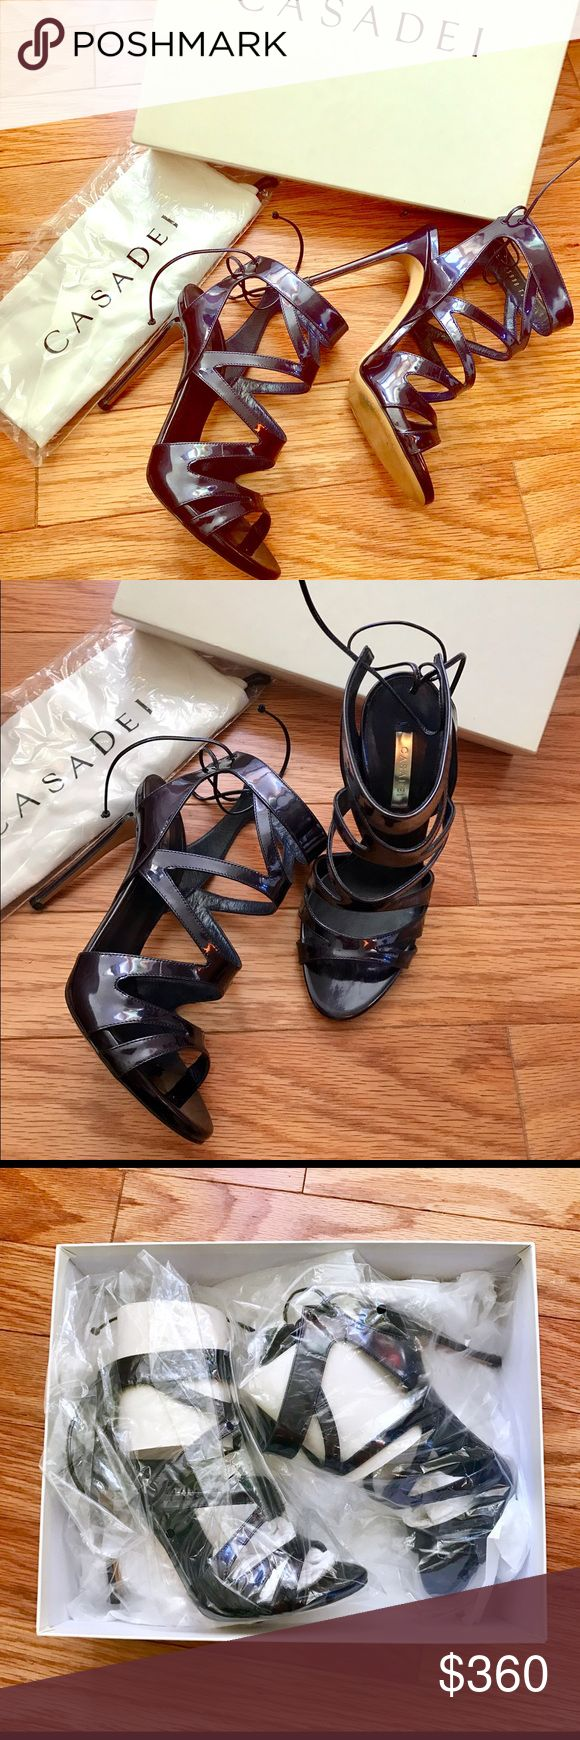 CASADEI gorgeous purple pumps, 6 inches size 6.5 CASADEI 100% Authentic women's shoes, gorgeous purple pumps, 6 inches size 6.5, real leather, made in Italy Casadei Shoes Heels